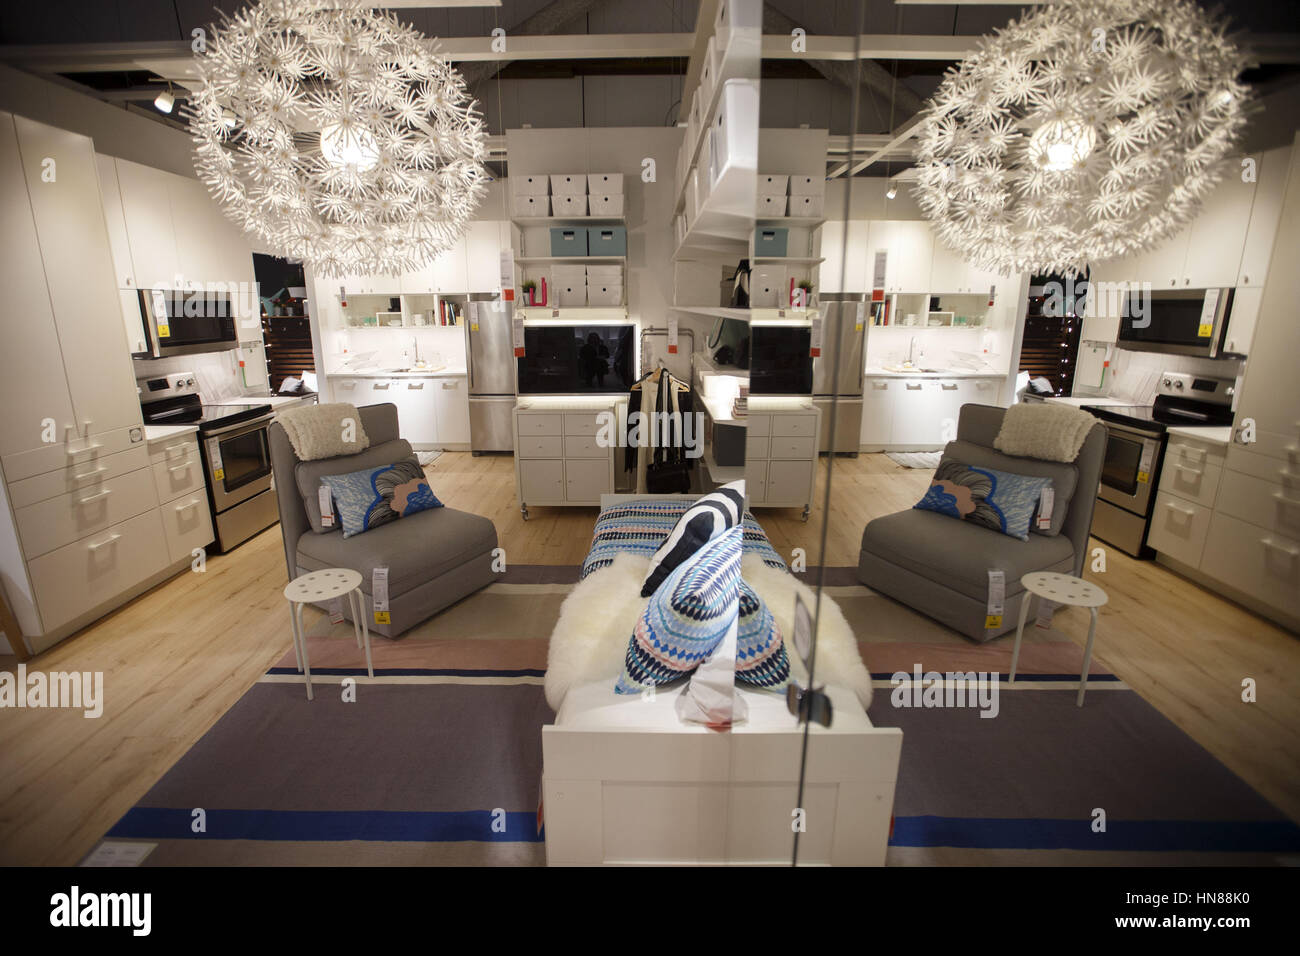 Burbank, CA, USA. 1st Feb, 2017. A Display For A 270 Square Foot Living  Space During A Preview Of The New IKEA Burbank Home Furnishings Store On  Wednesday, ...